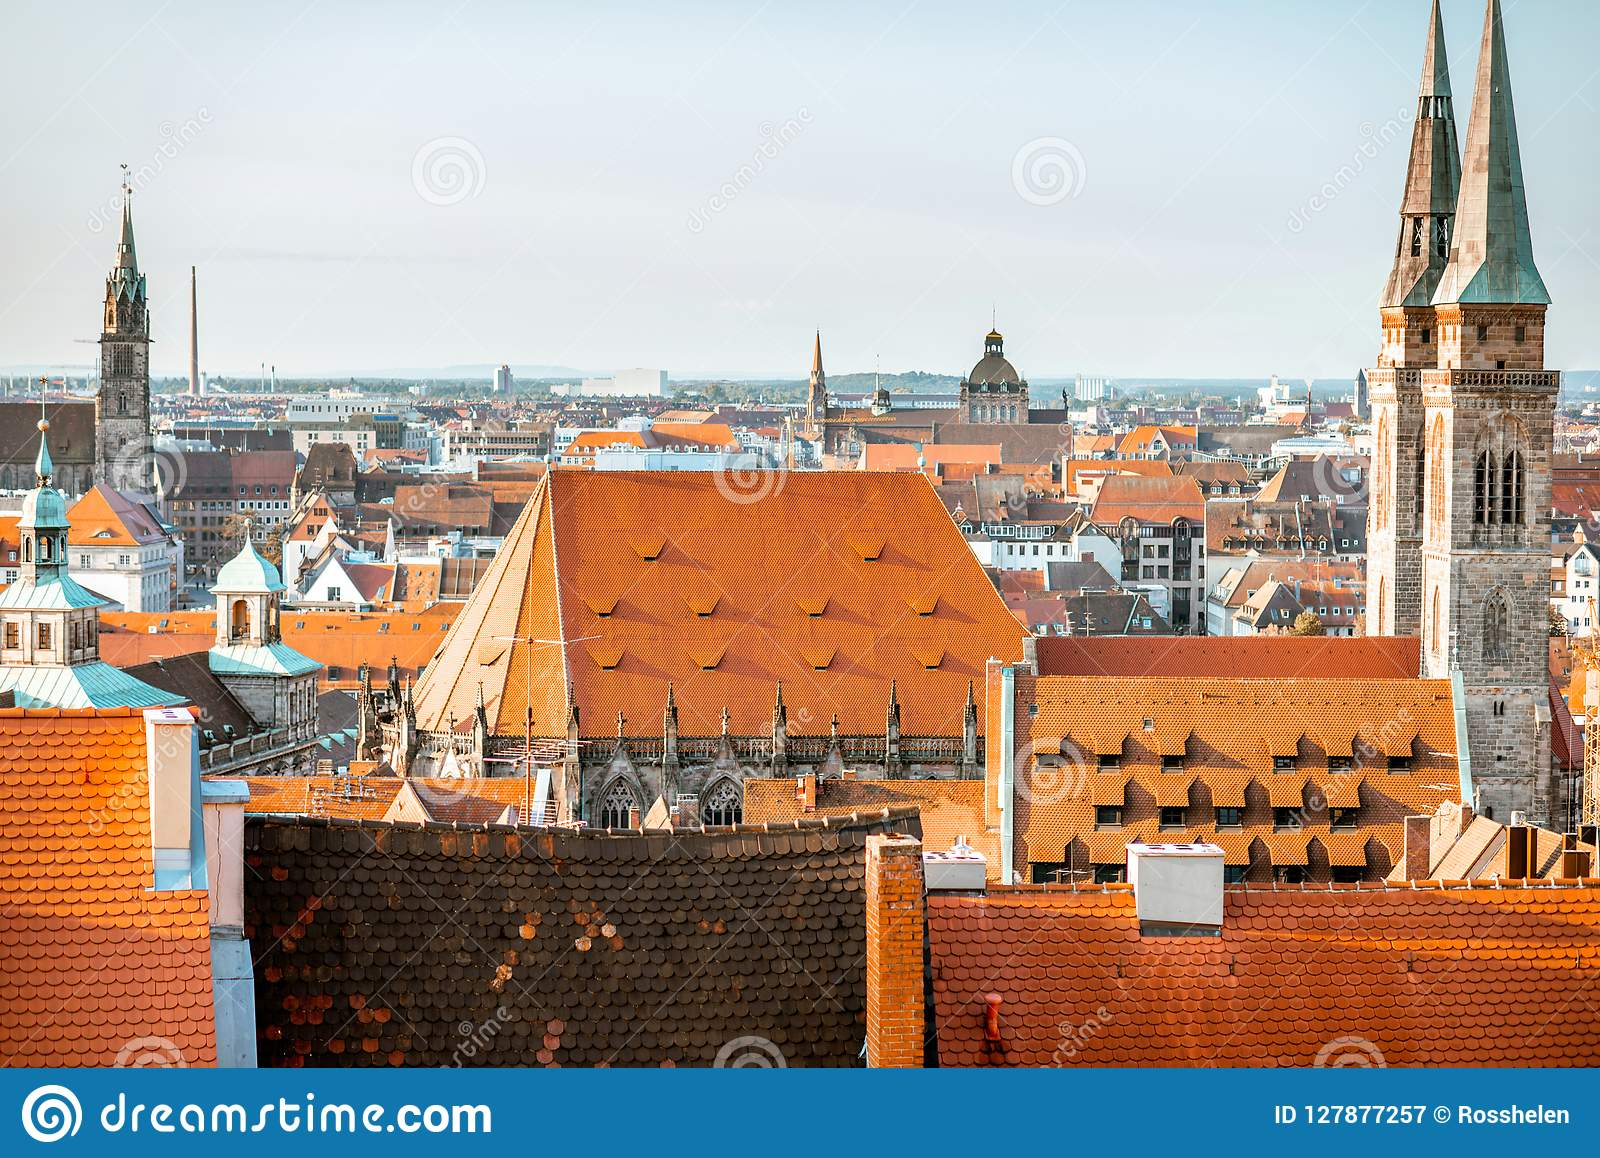 Old town in Nurnberg city, Germany